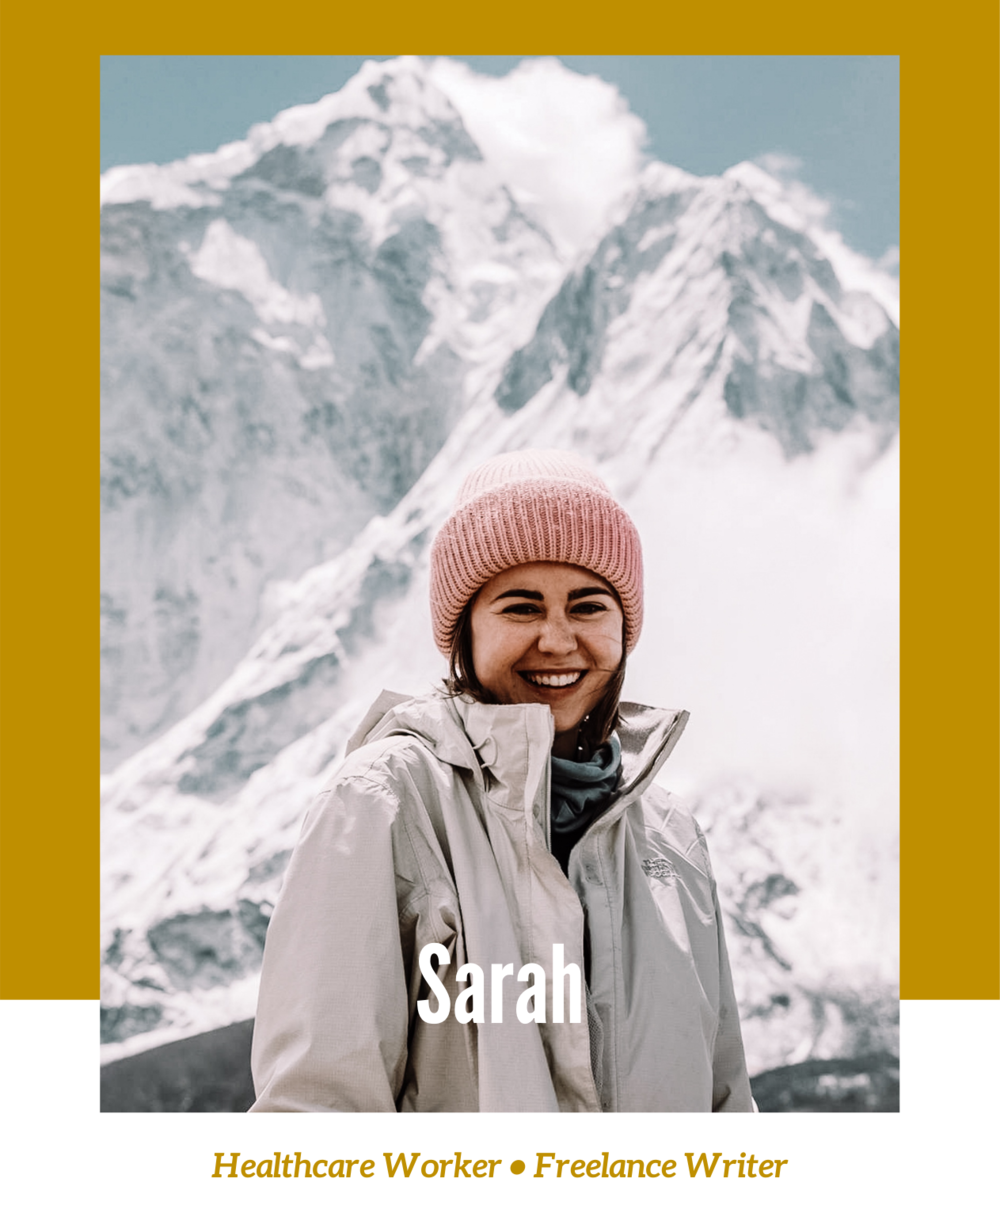 Sarah is a Healthcare Worker and Freelance Writer